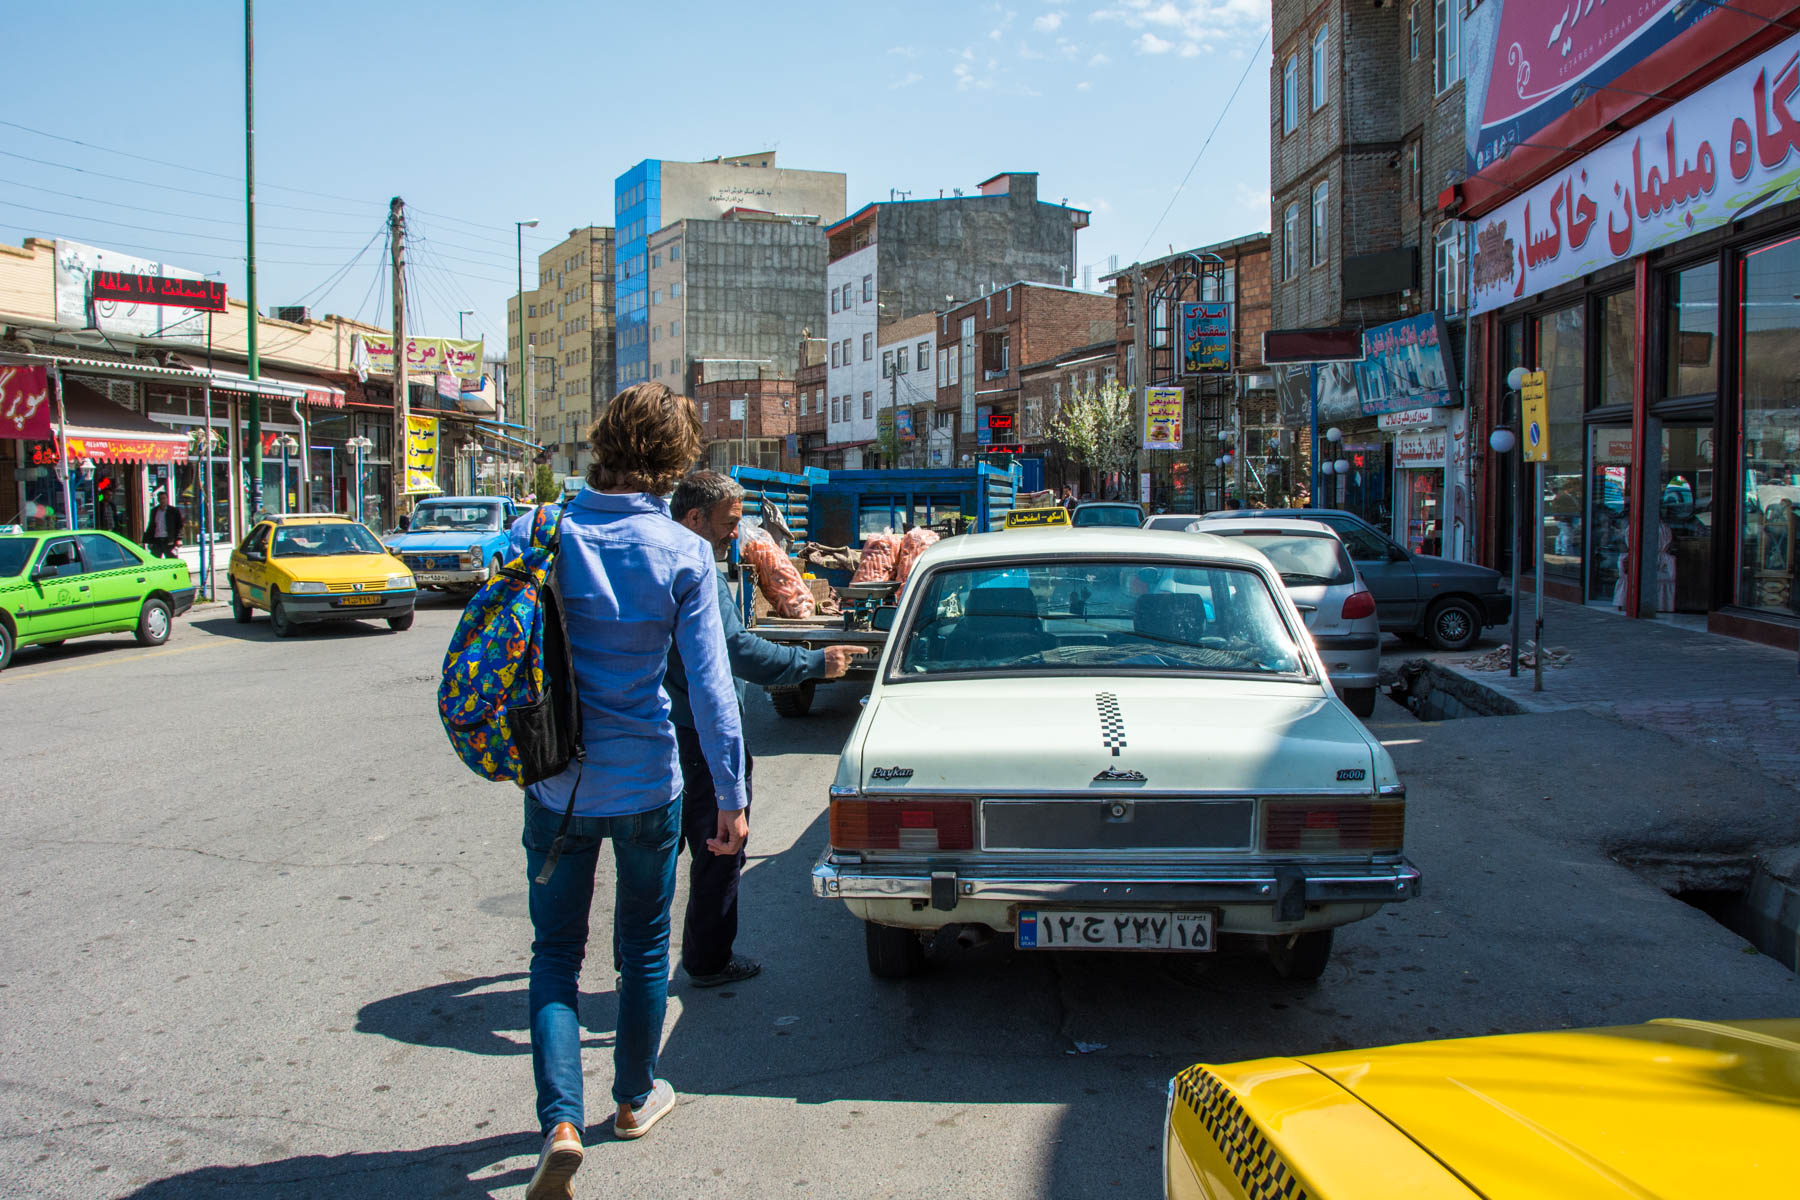 Taking a private taxi on the way to Kandovan in Iran